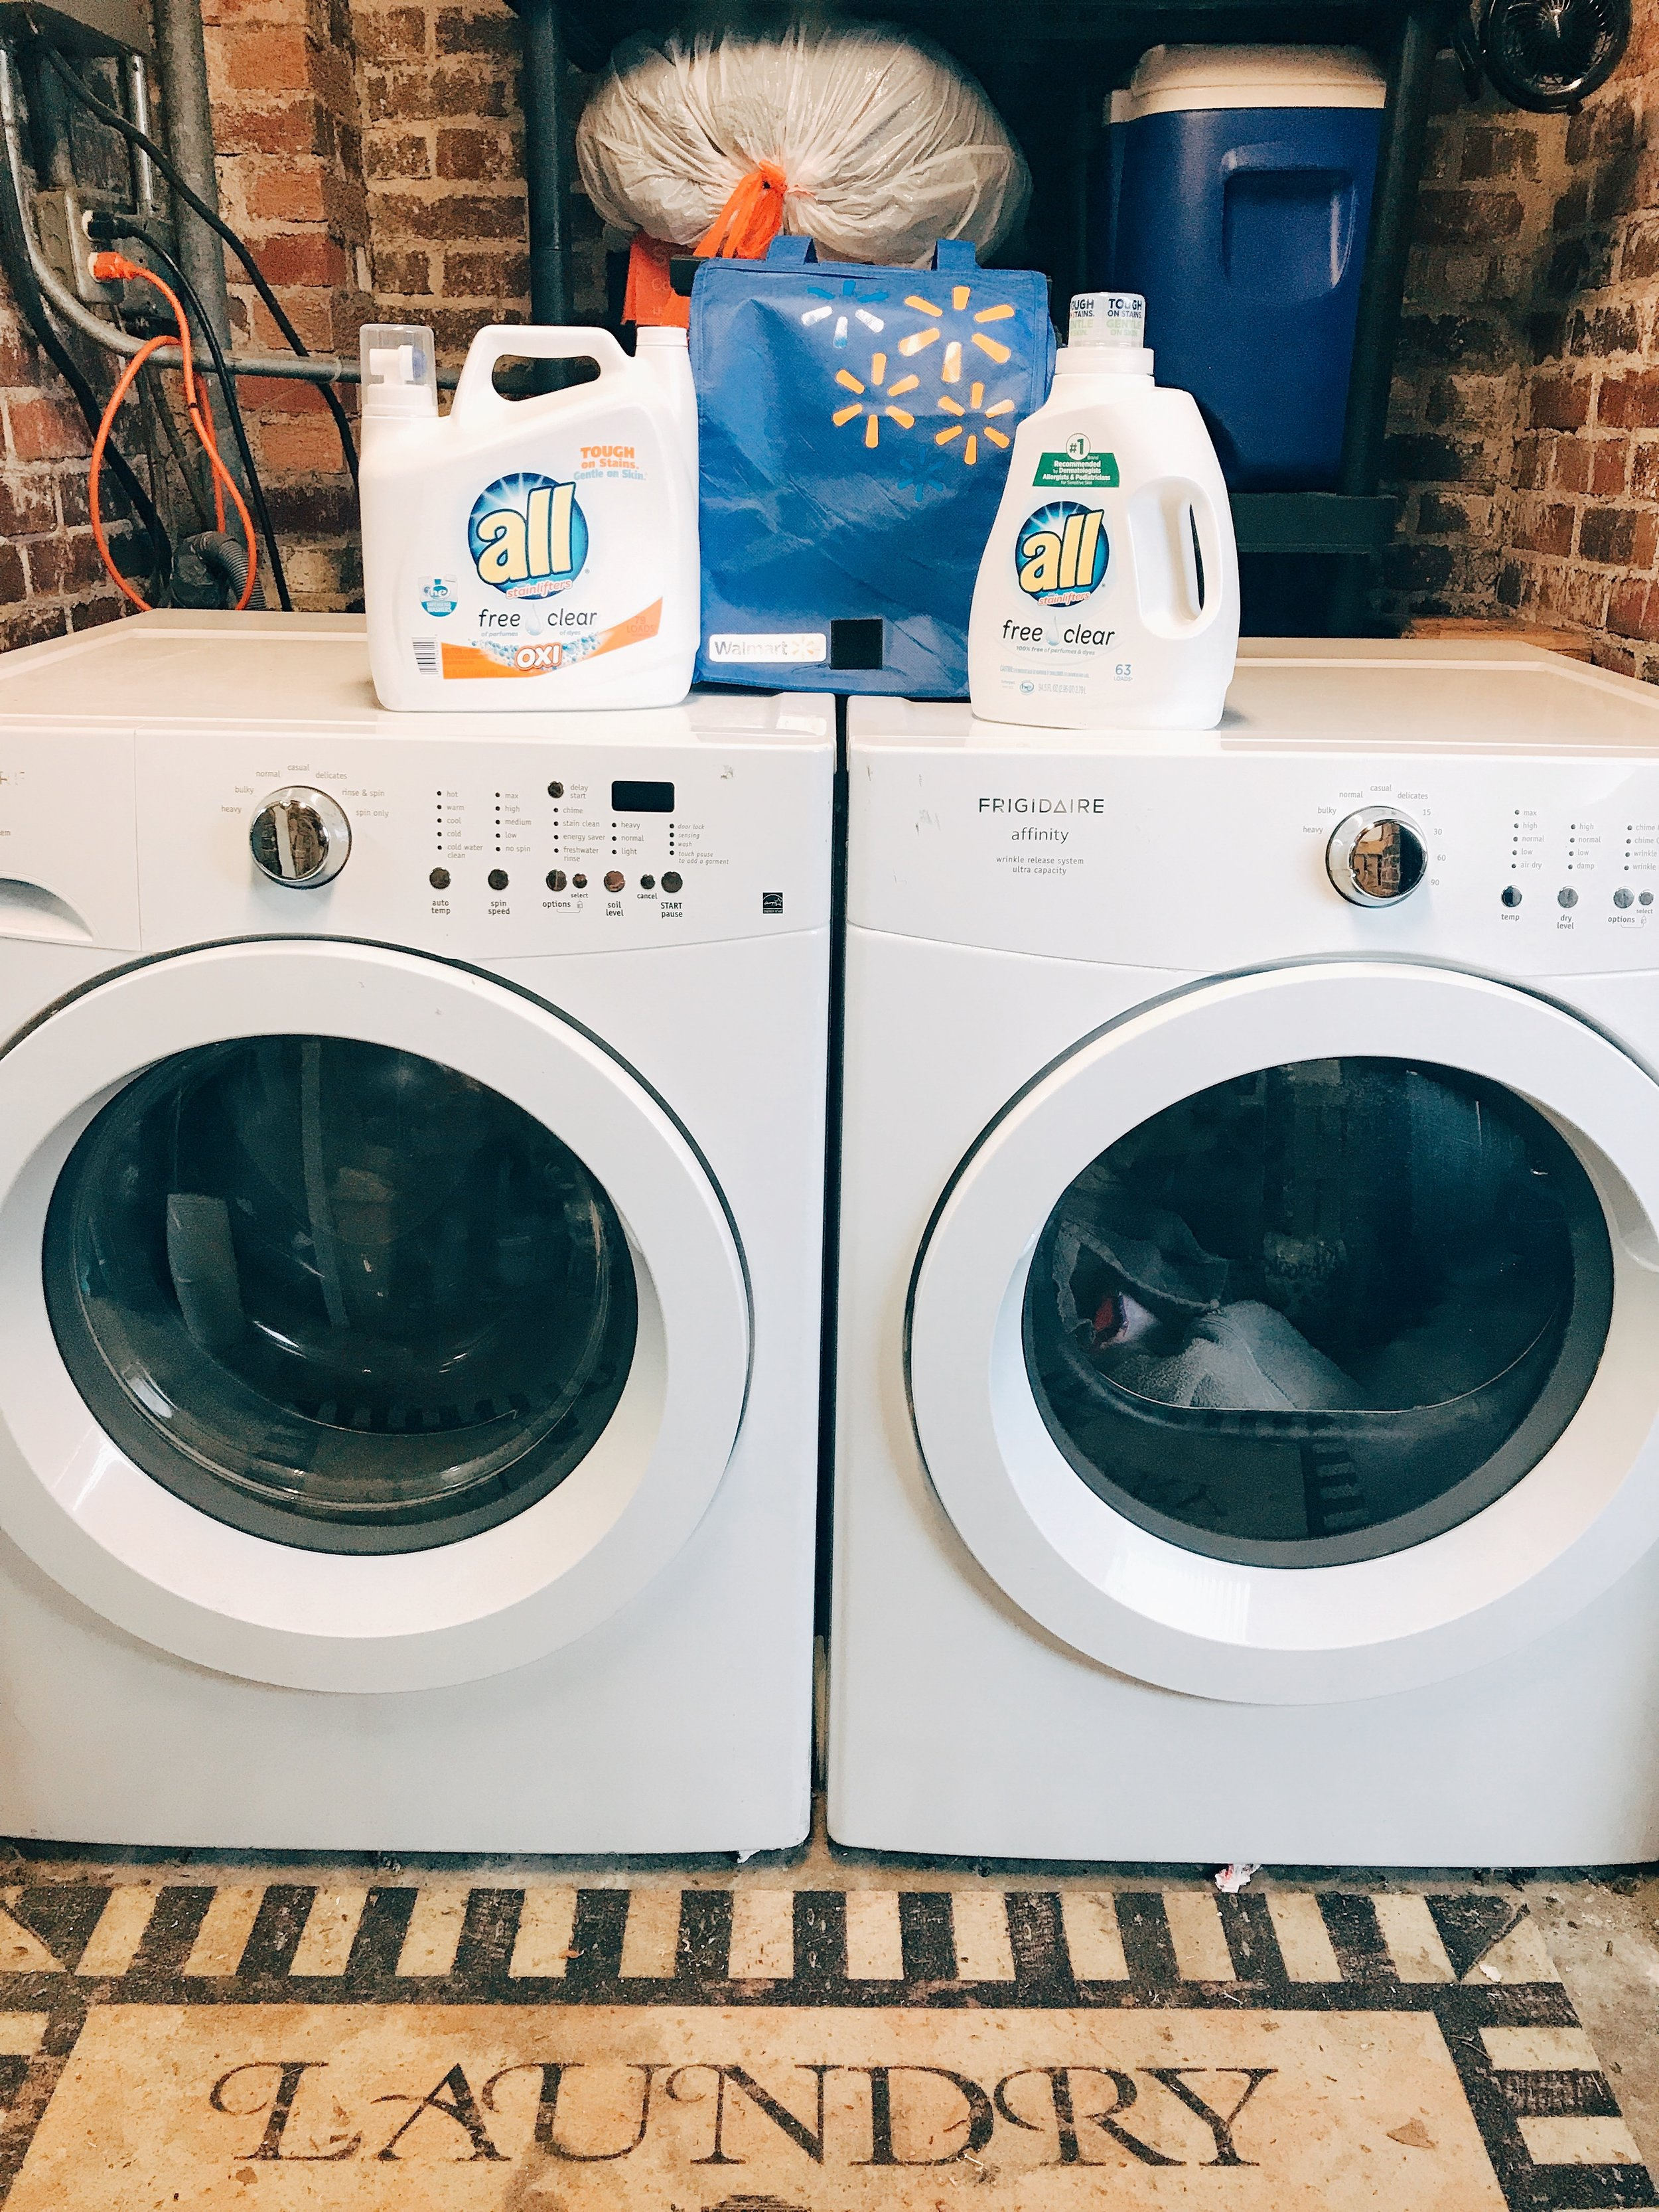 Our laundry room is outside. It's in an enclosed area of our carport. It has its pros and cons being outside!